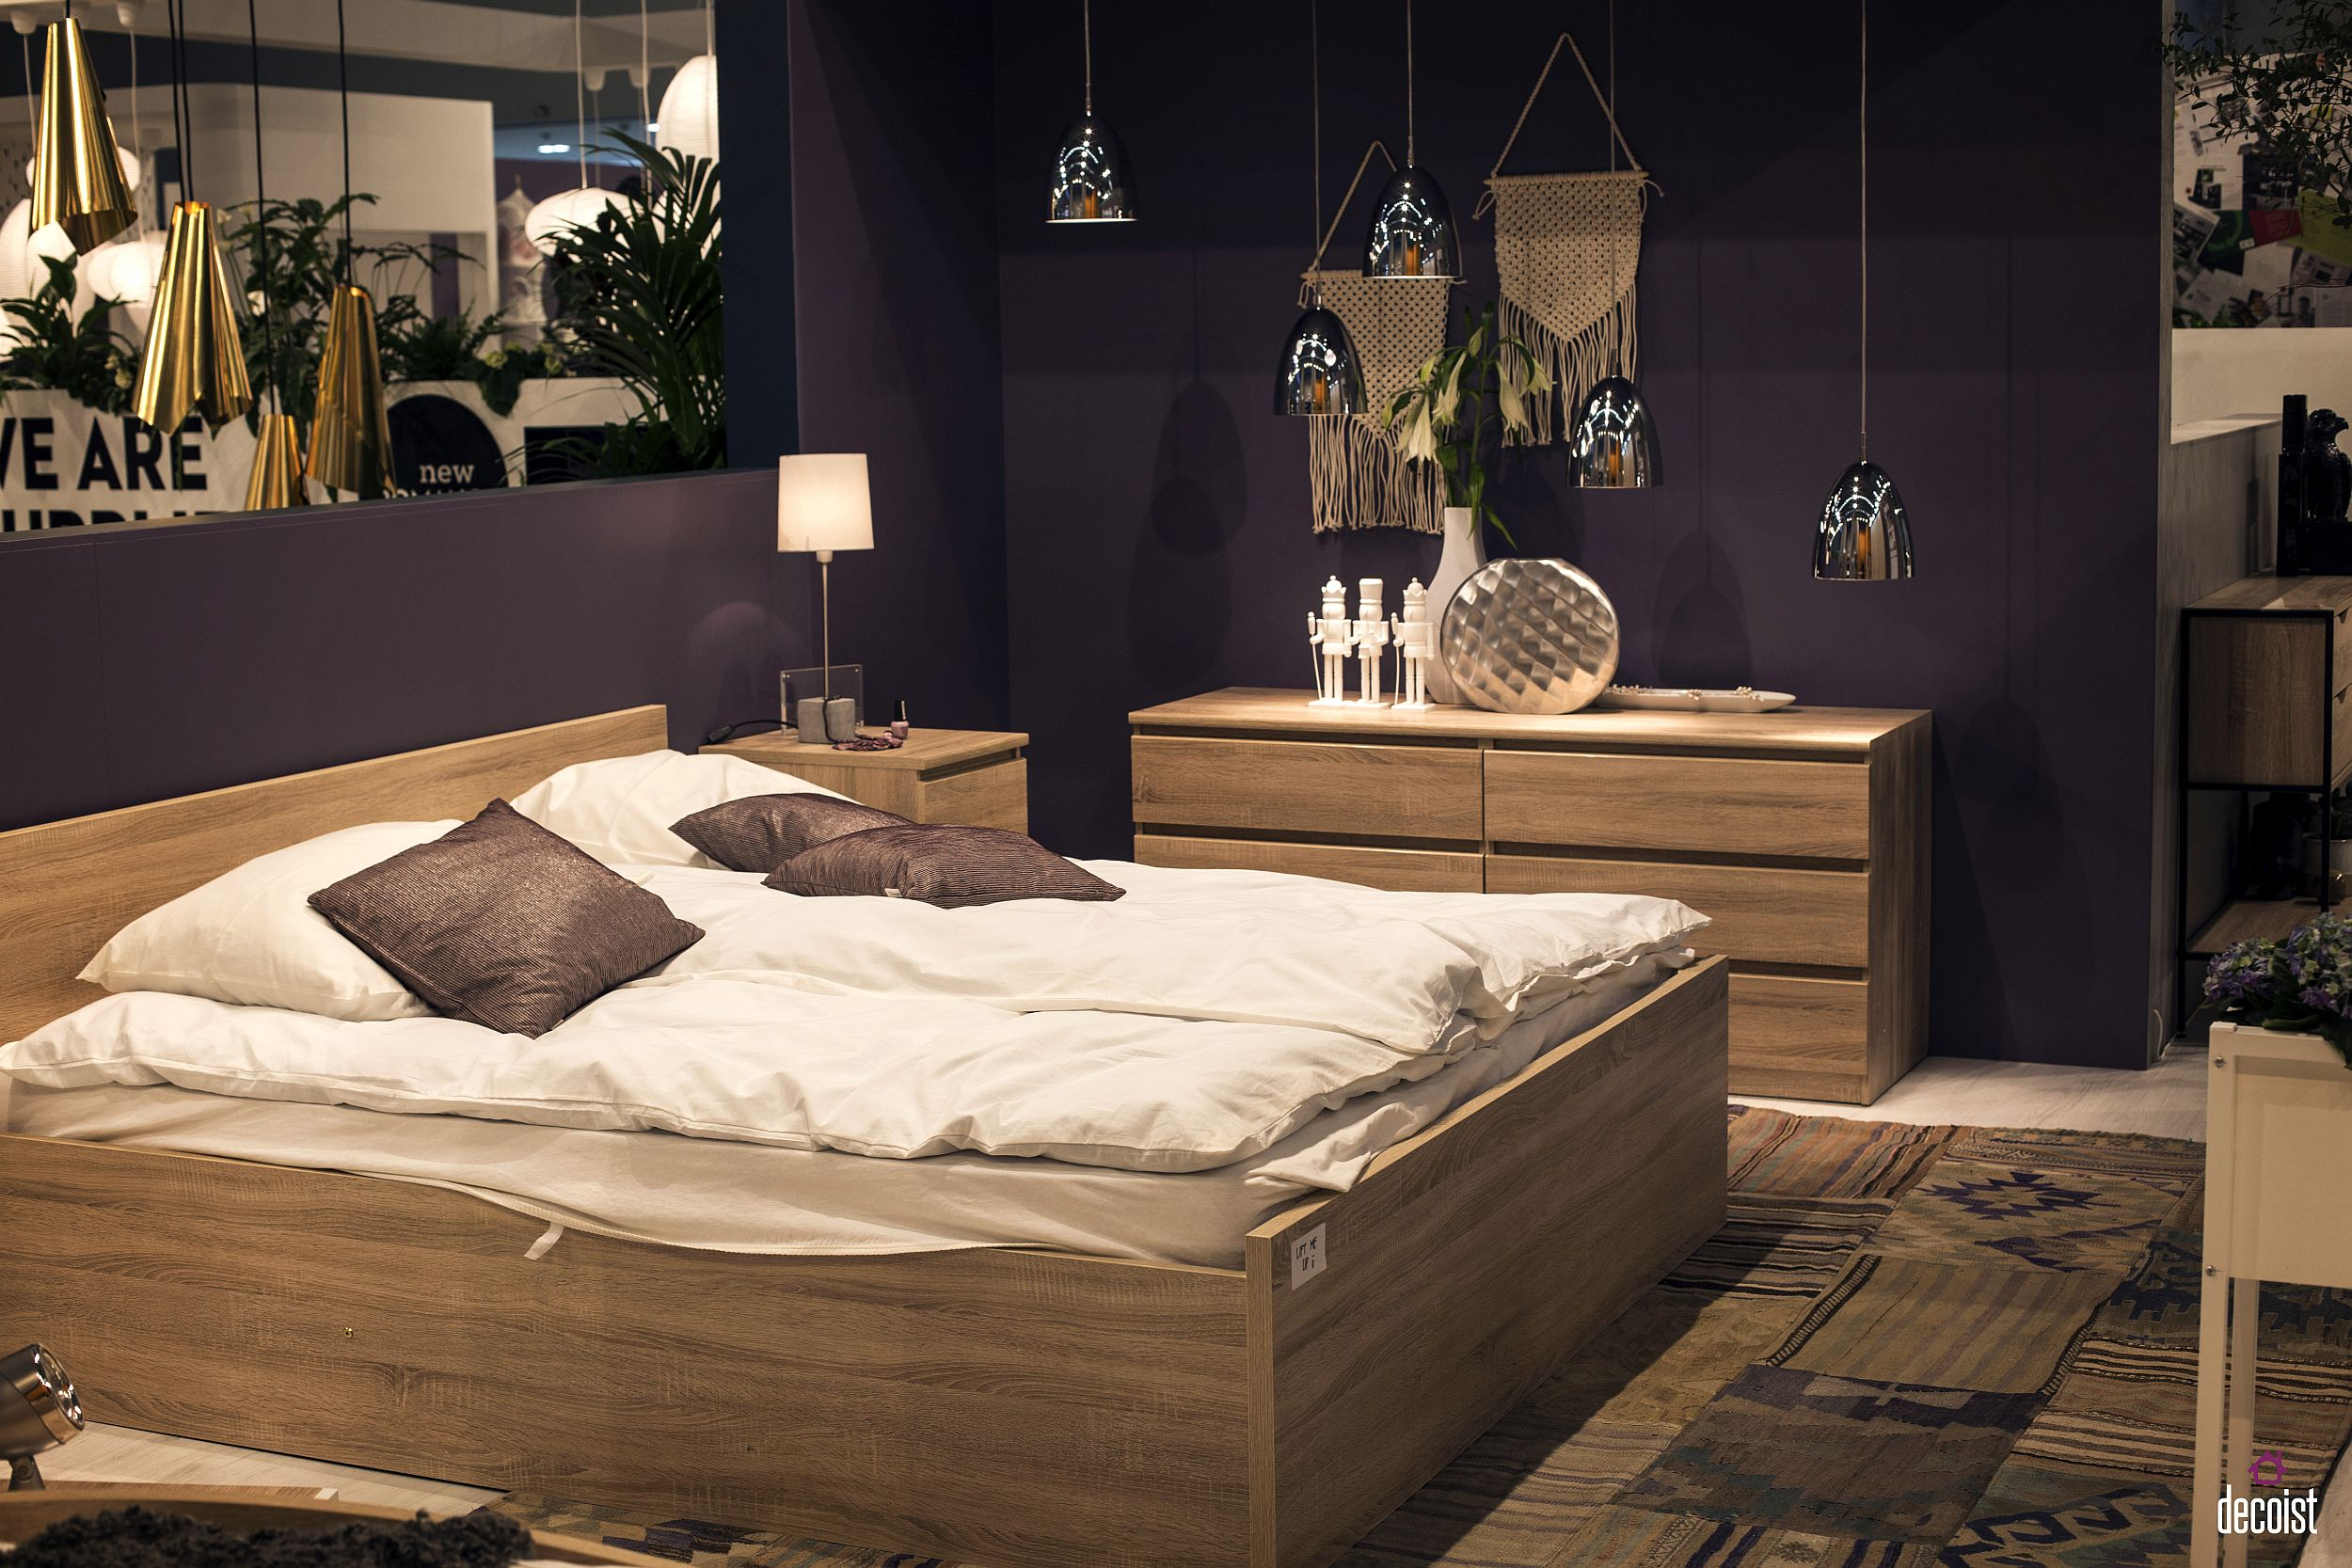 Bring the pendants into the bedroom to give the space a unique and sparkling aesthetic